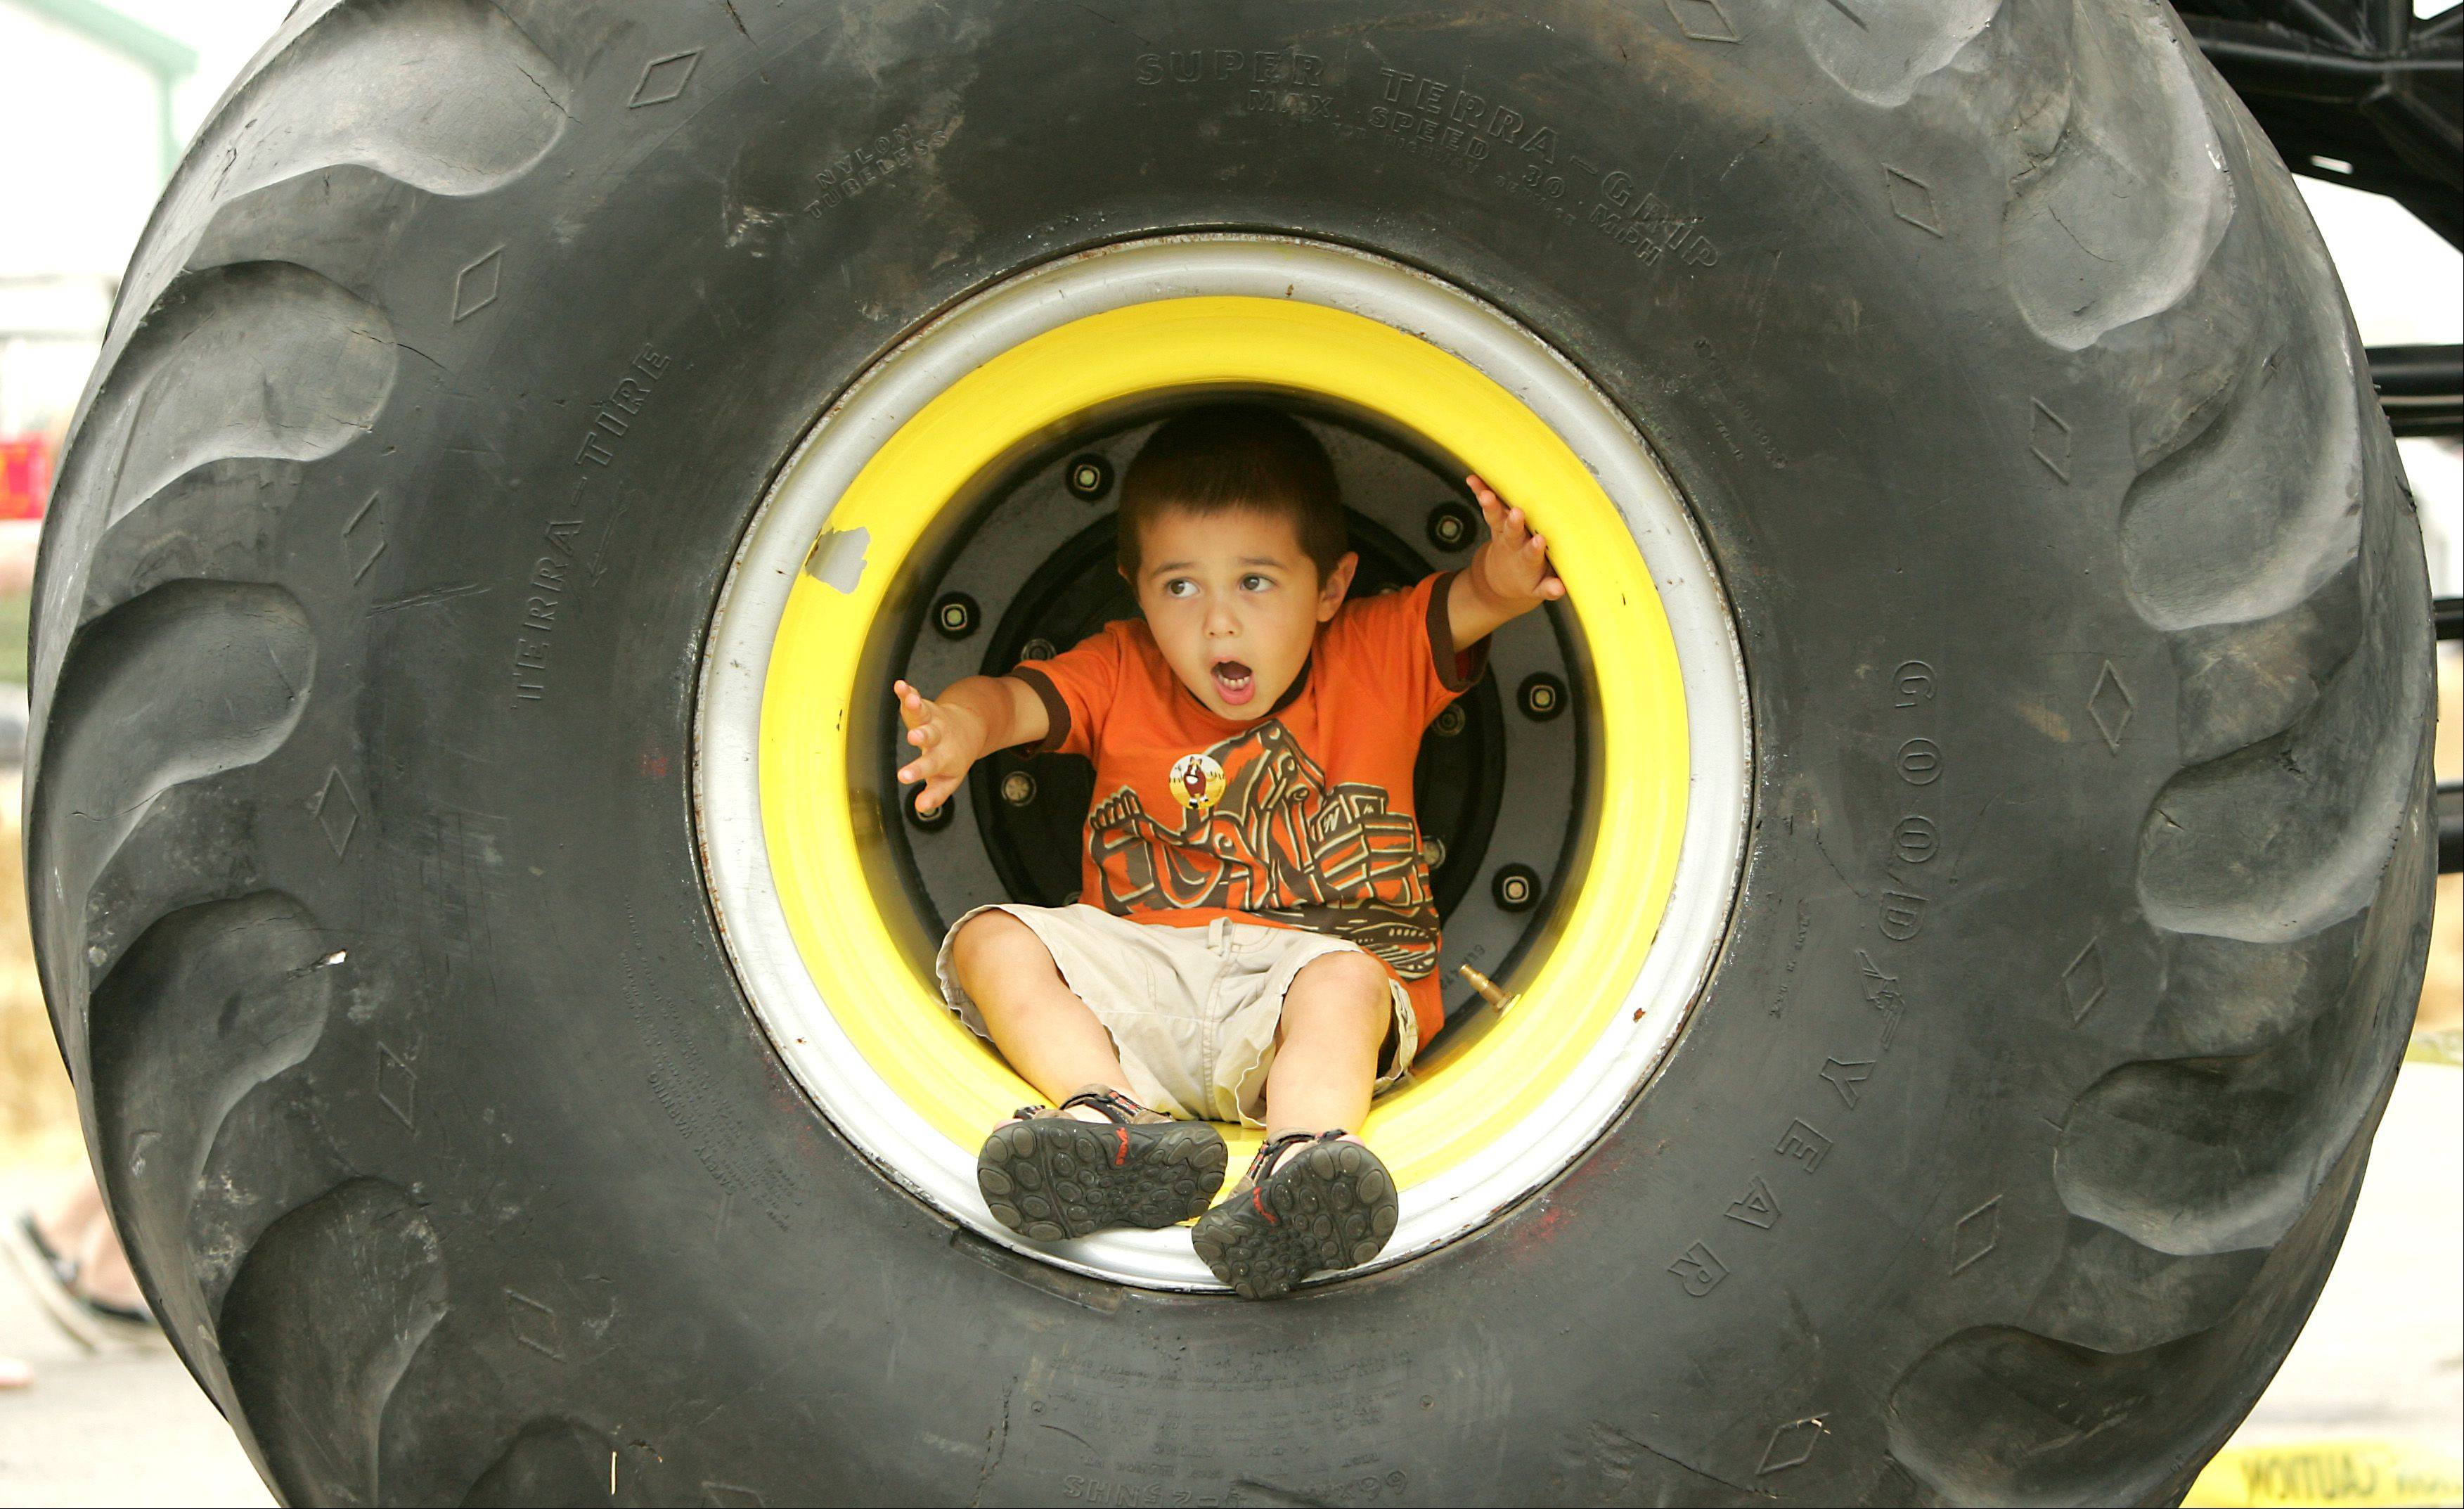 Anthony Capasso, 4, of Chicago, rests in the wheel of �Outback Thunda� attraction.